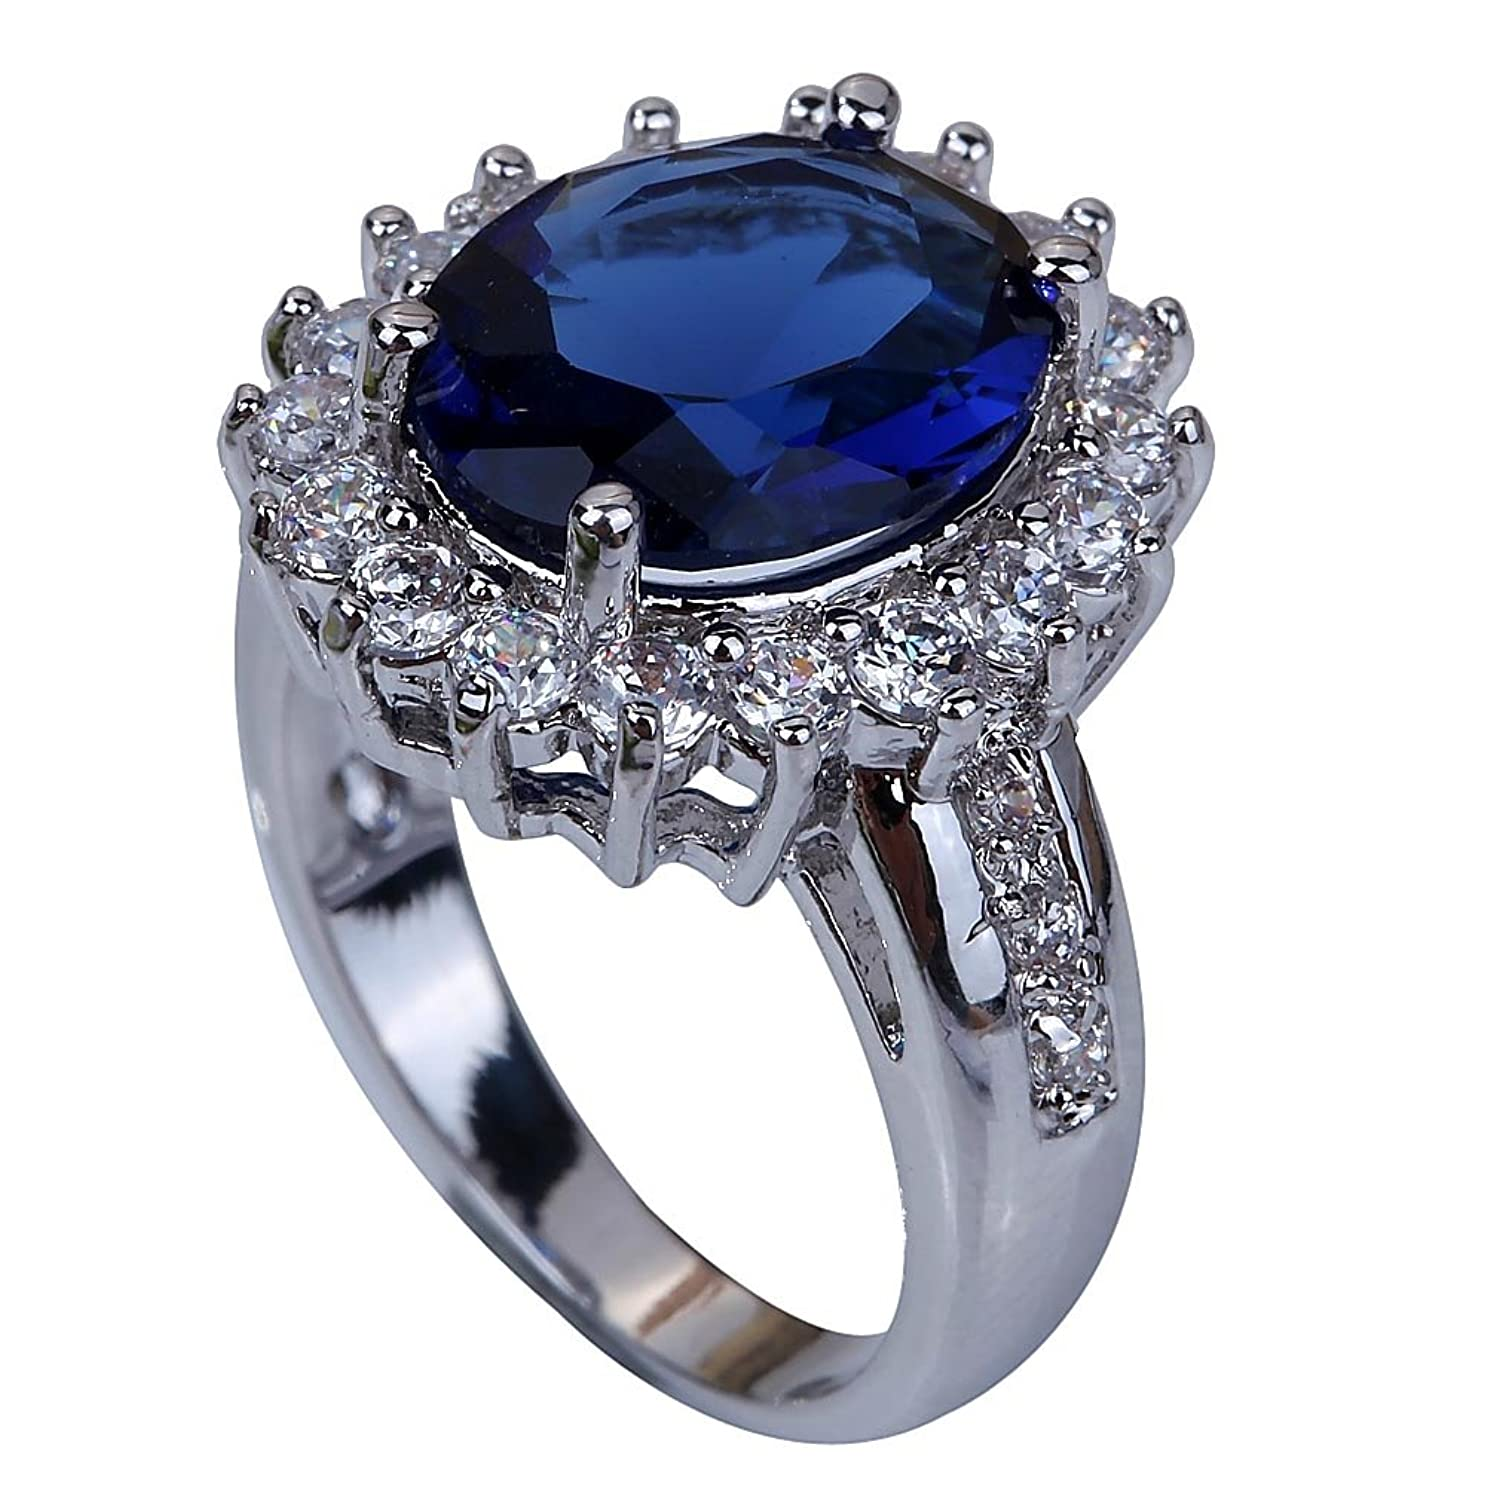 YAZILIND Jewelry Unique Design Silver Plated Sapphire Women Ring lady